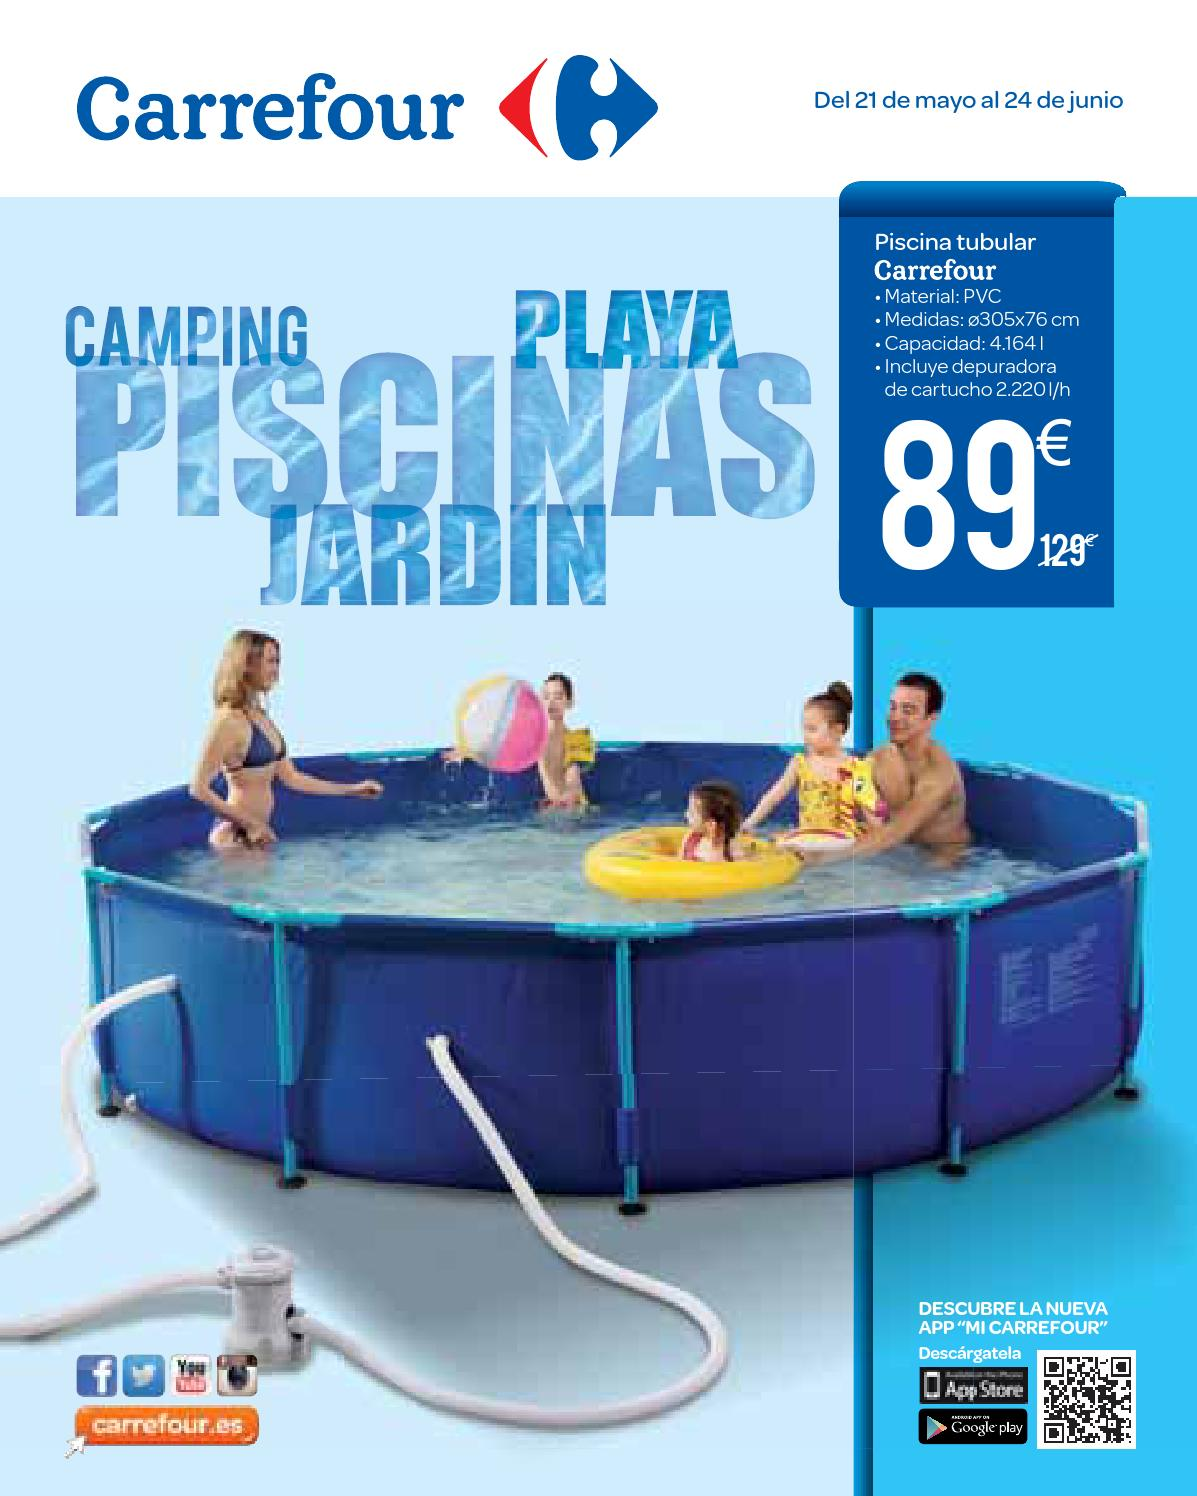 Piscinas y jardin by losdescuentos issuu - Depuradora piscina pequena carrefour ...